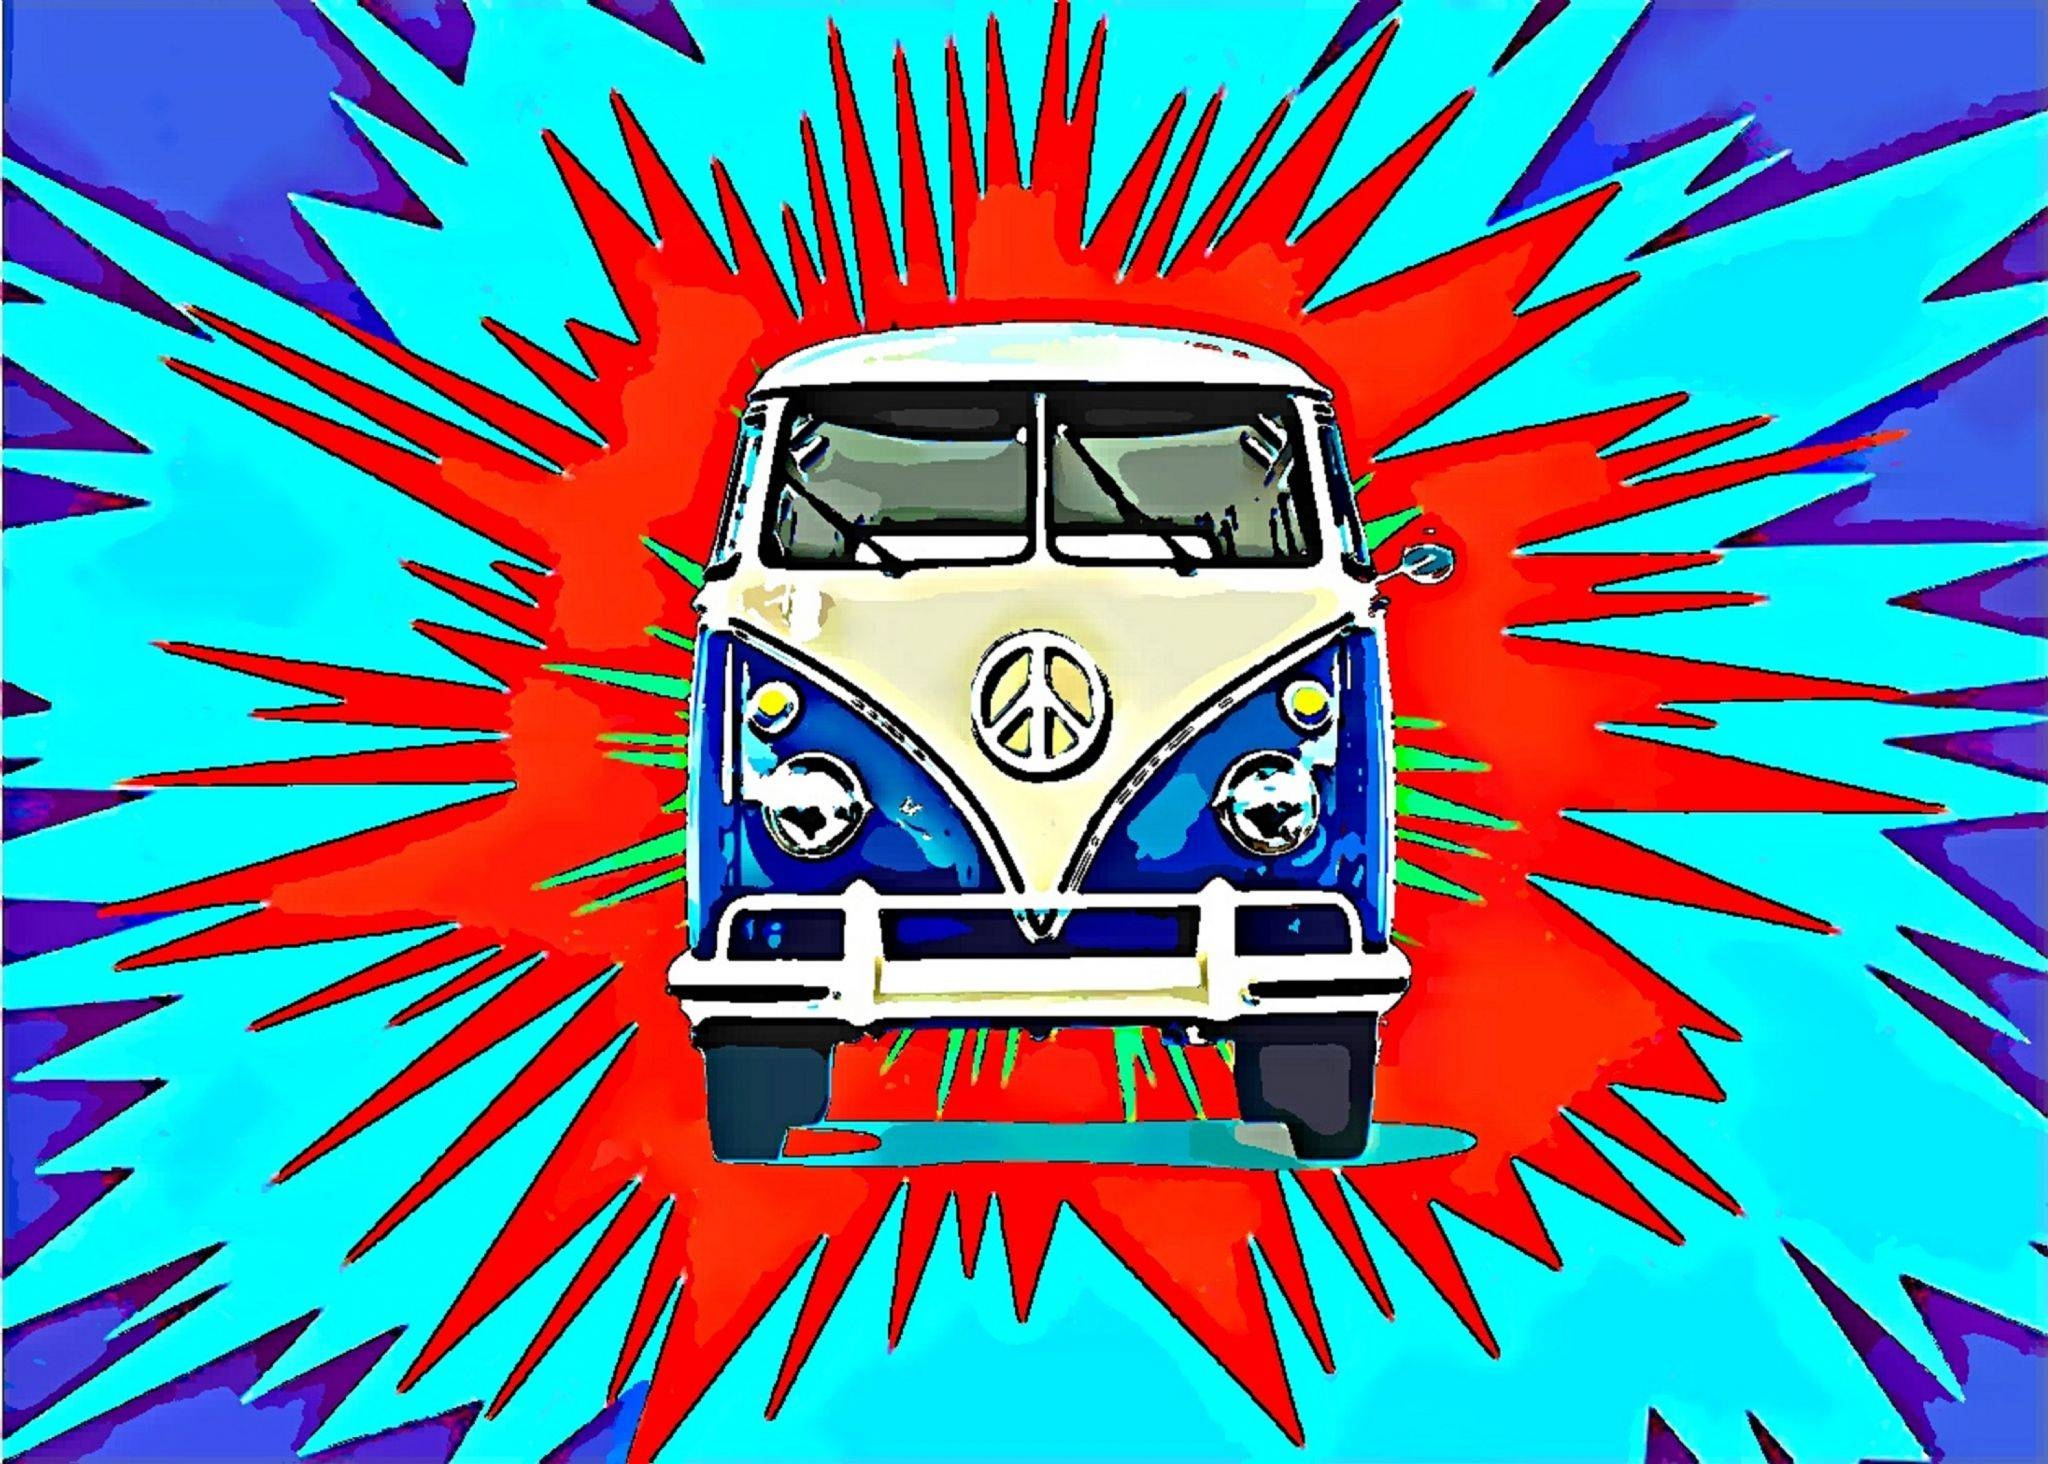 Camper Van Volkswagen Explosion Metal Wall Plaque From My Original Throughout 2017 Campervan Metal Wall Art (View 1 of 20)